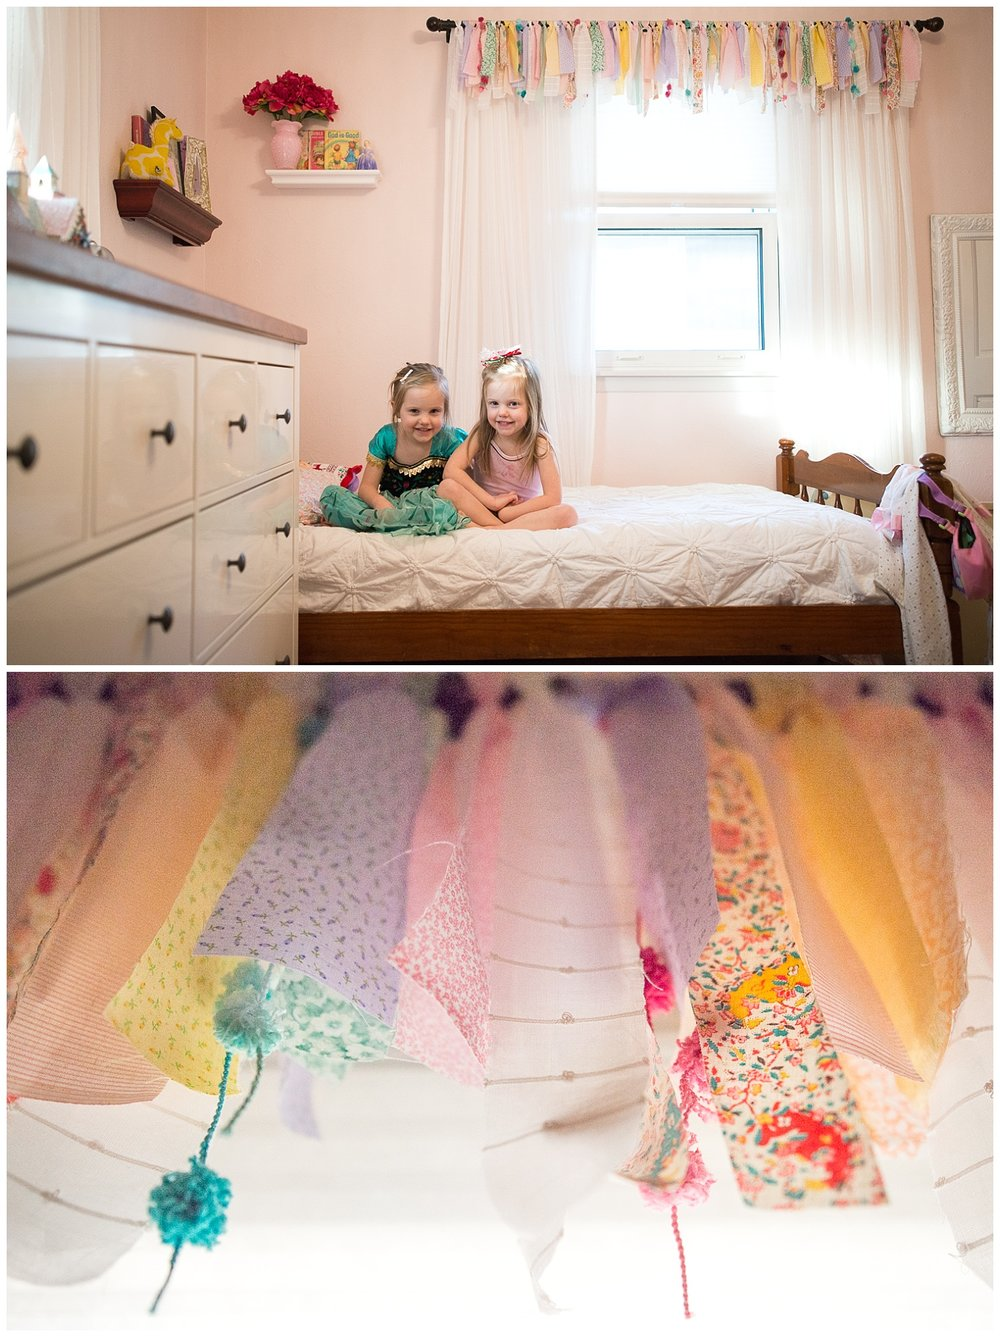 Here are the adorable occupants of this room – Clara and Anna.  Christy incorporated fabric from her great grandmother's housecoat (the colorful fabric) to make the girls' valance.